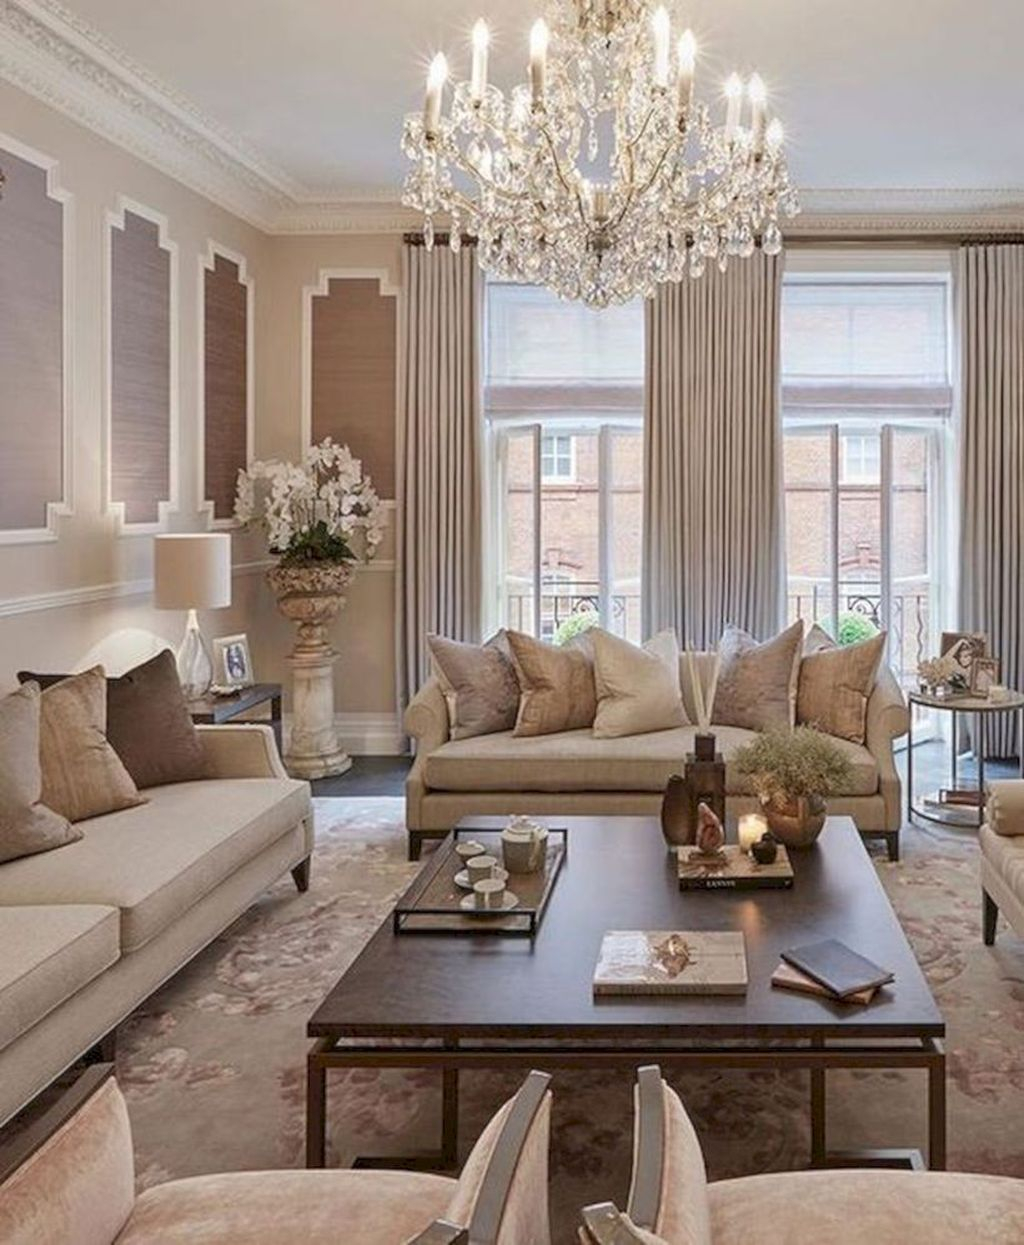 Awesome Luxurious And Elegant Living Room Design Ideas39